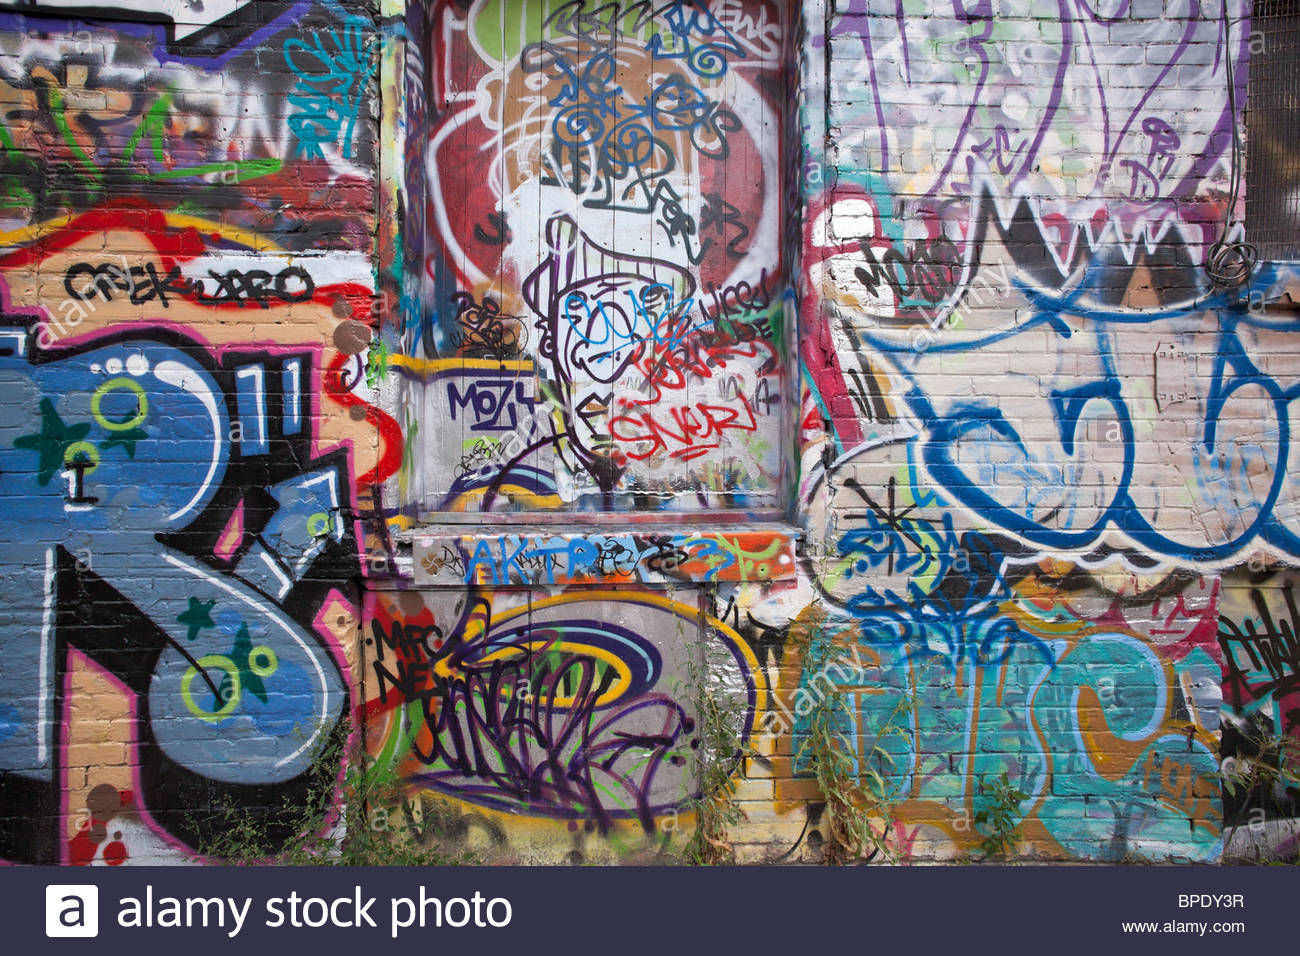 Graffiti wall toronto downtown -  Graffiti On A Wall And Door In A Back Alley Of The Fashion District Near Queen